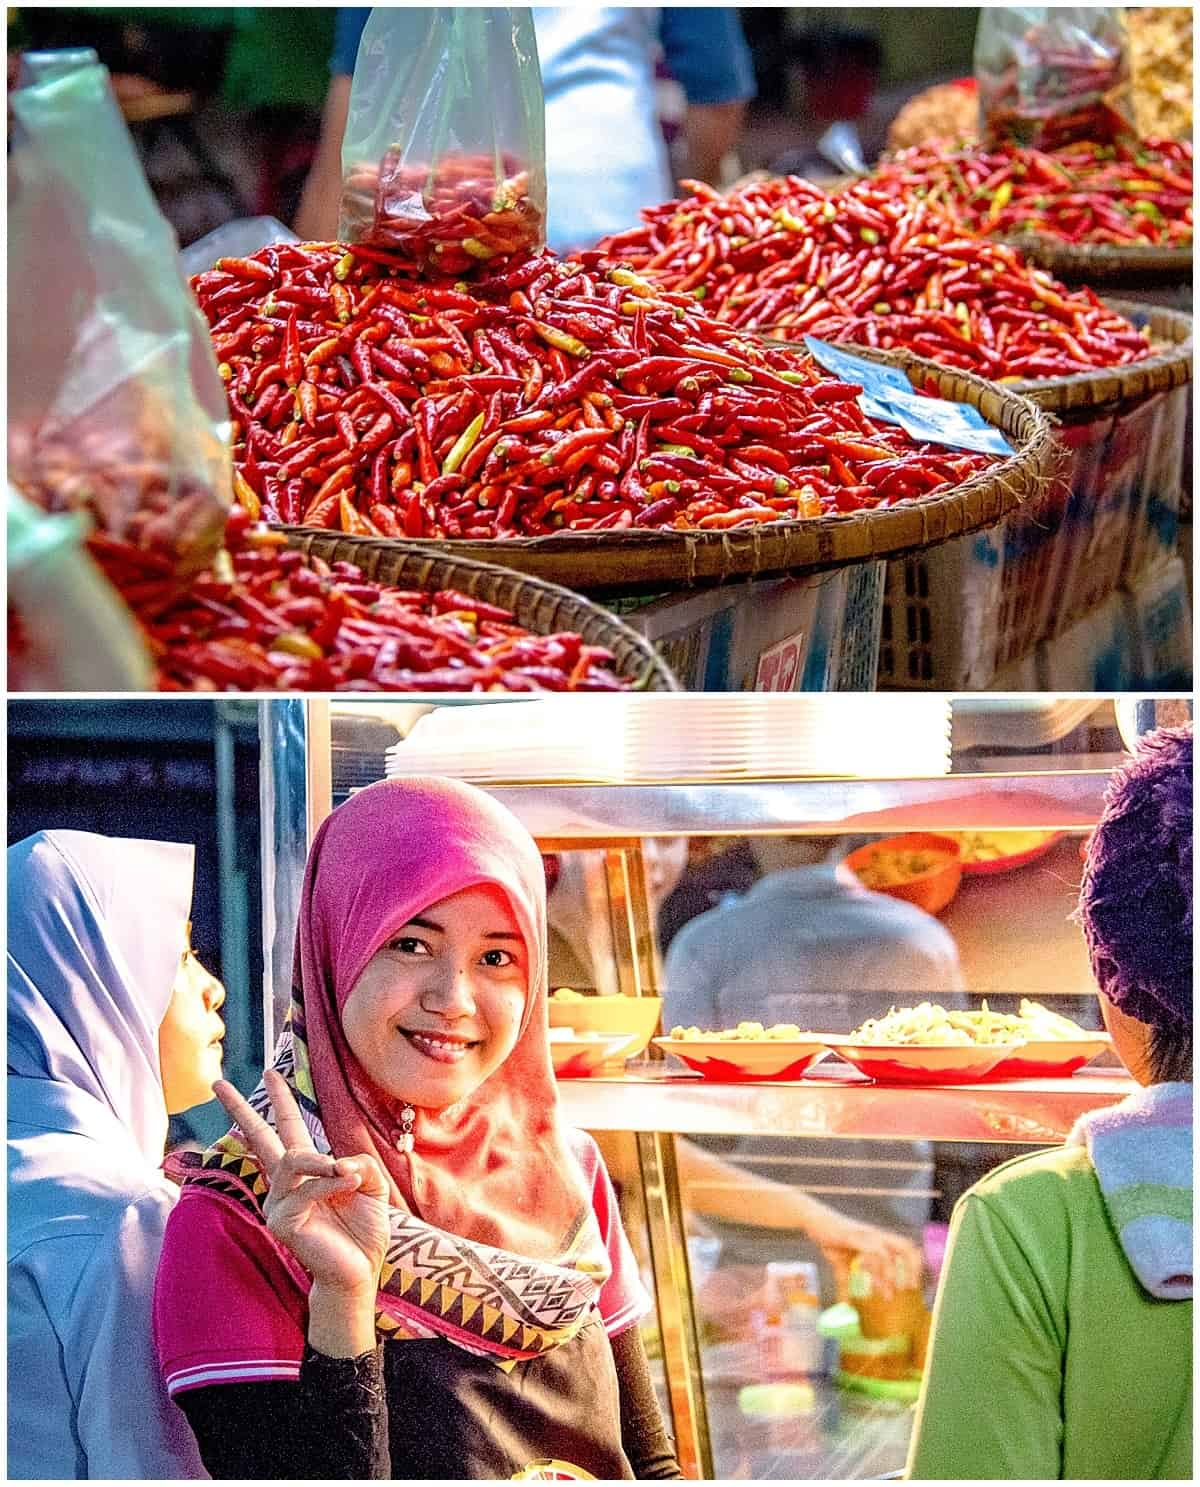 Red chilli pepers for sale in Sabah Malaysian Borneo